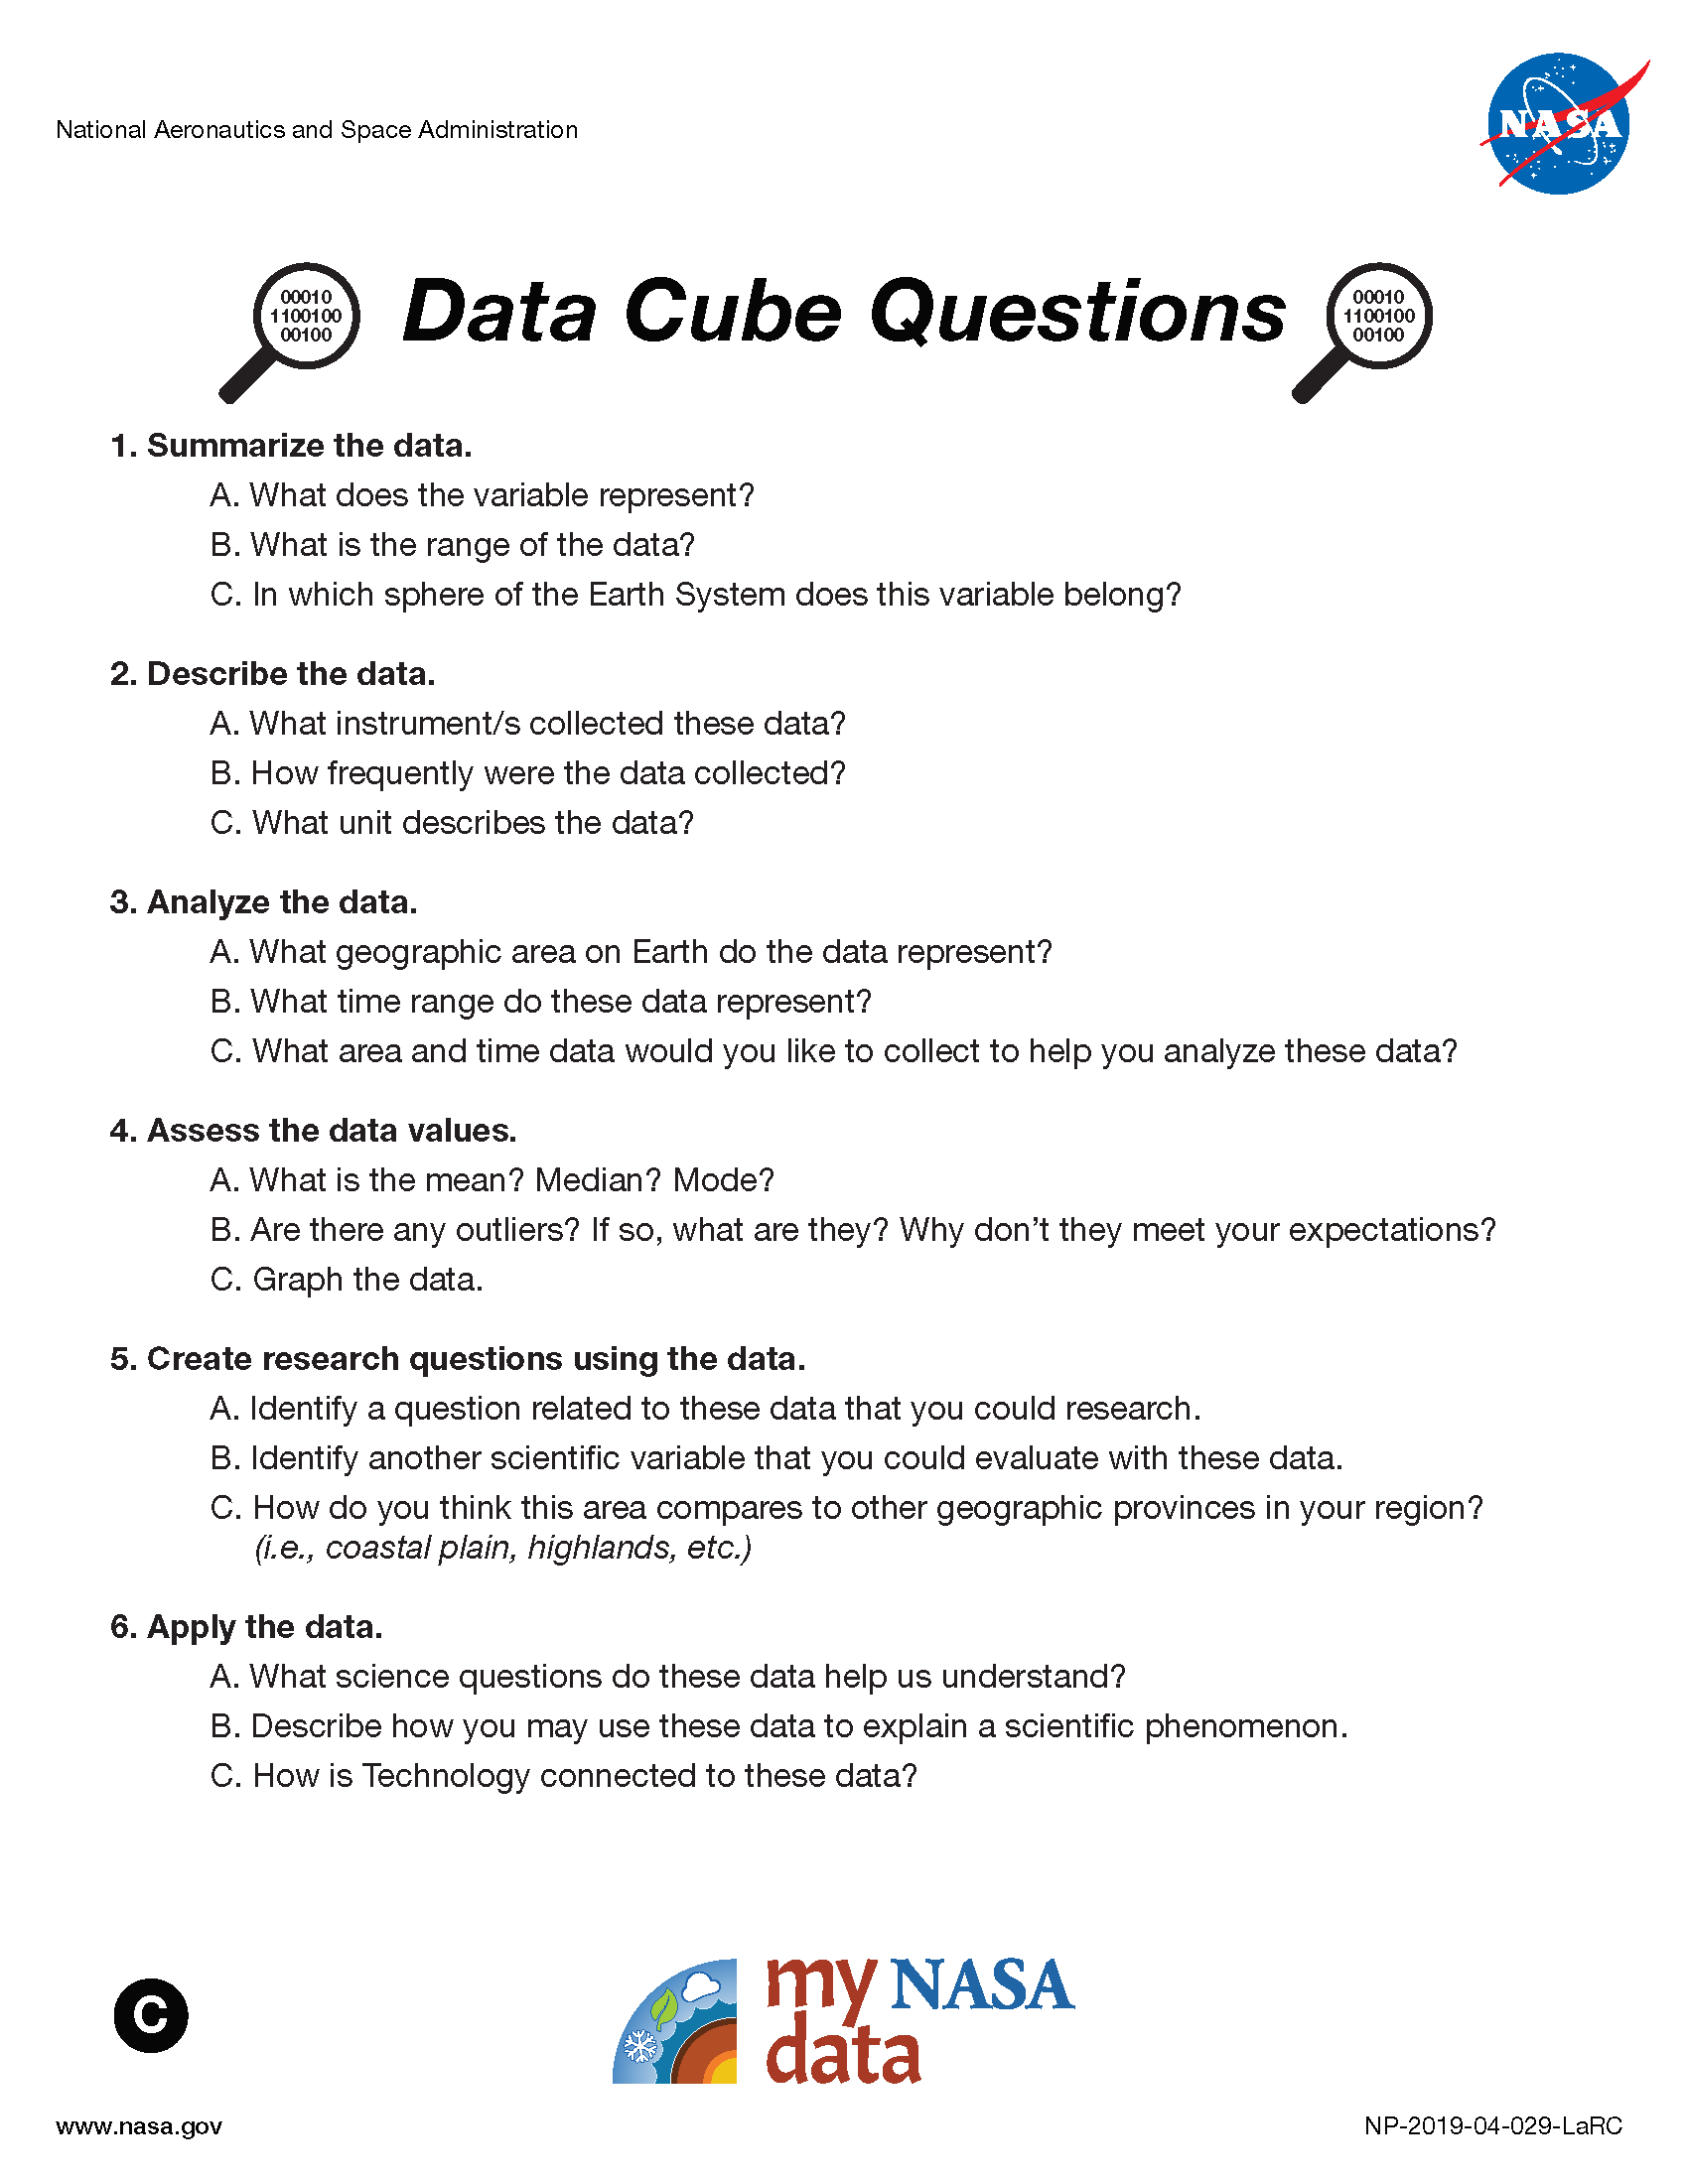 My NASA Data - Data Literacy Cube - Advanced Questions